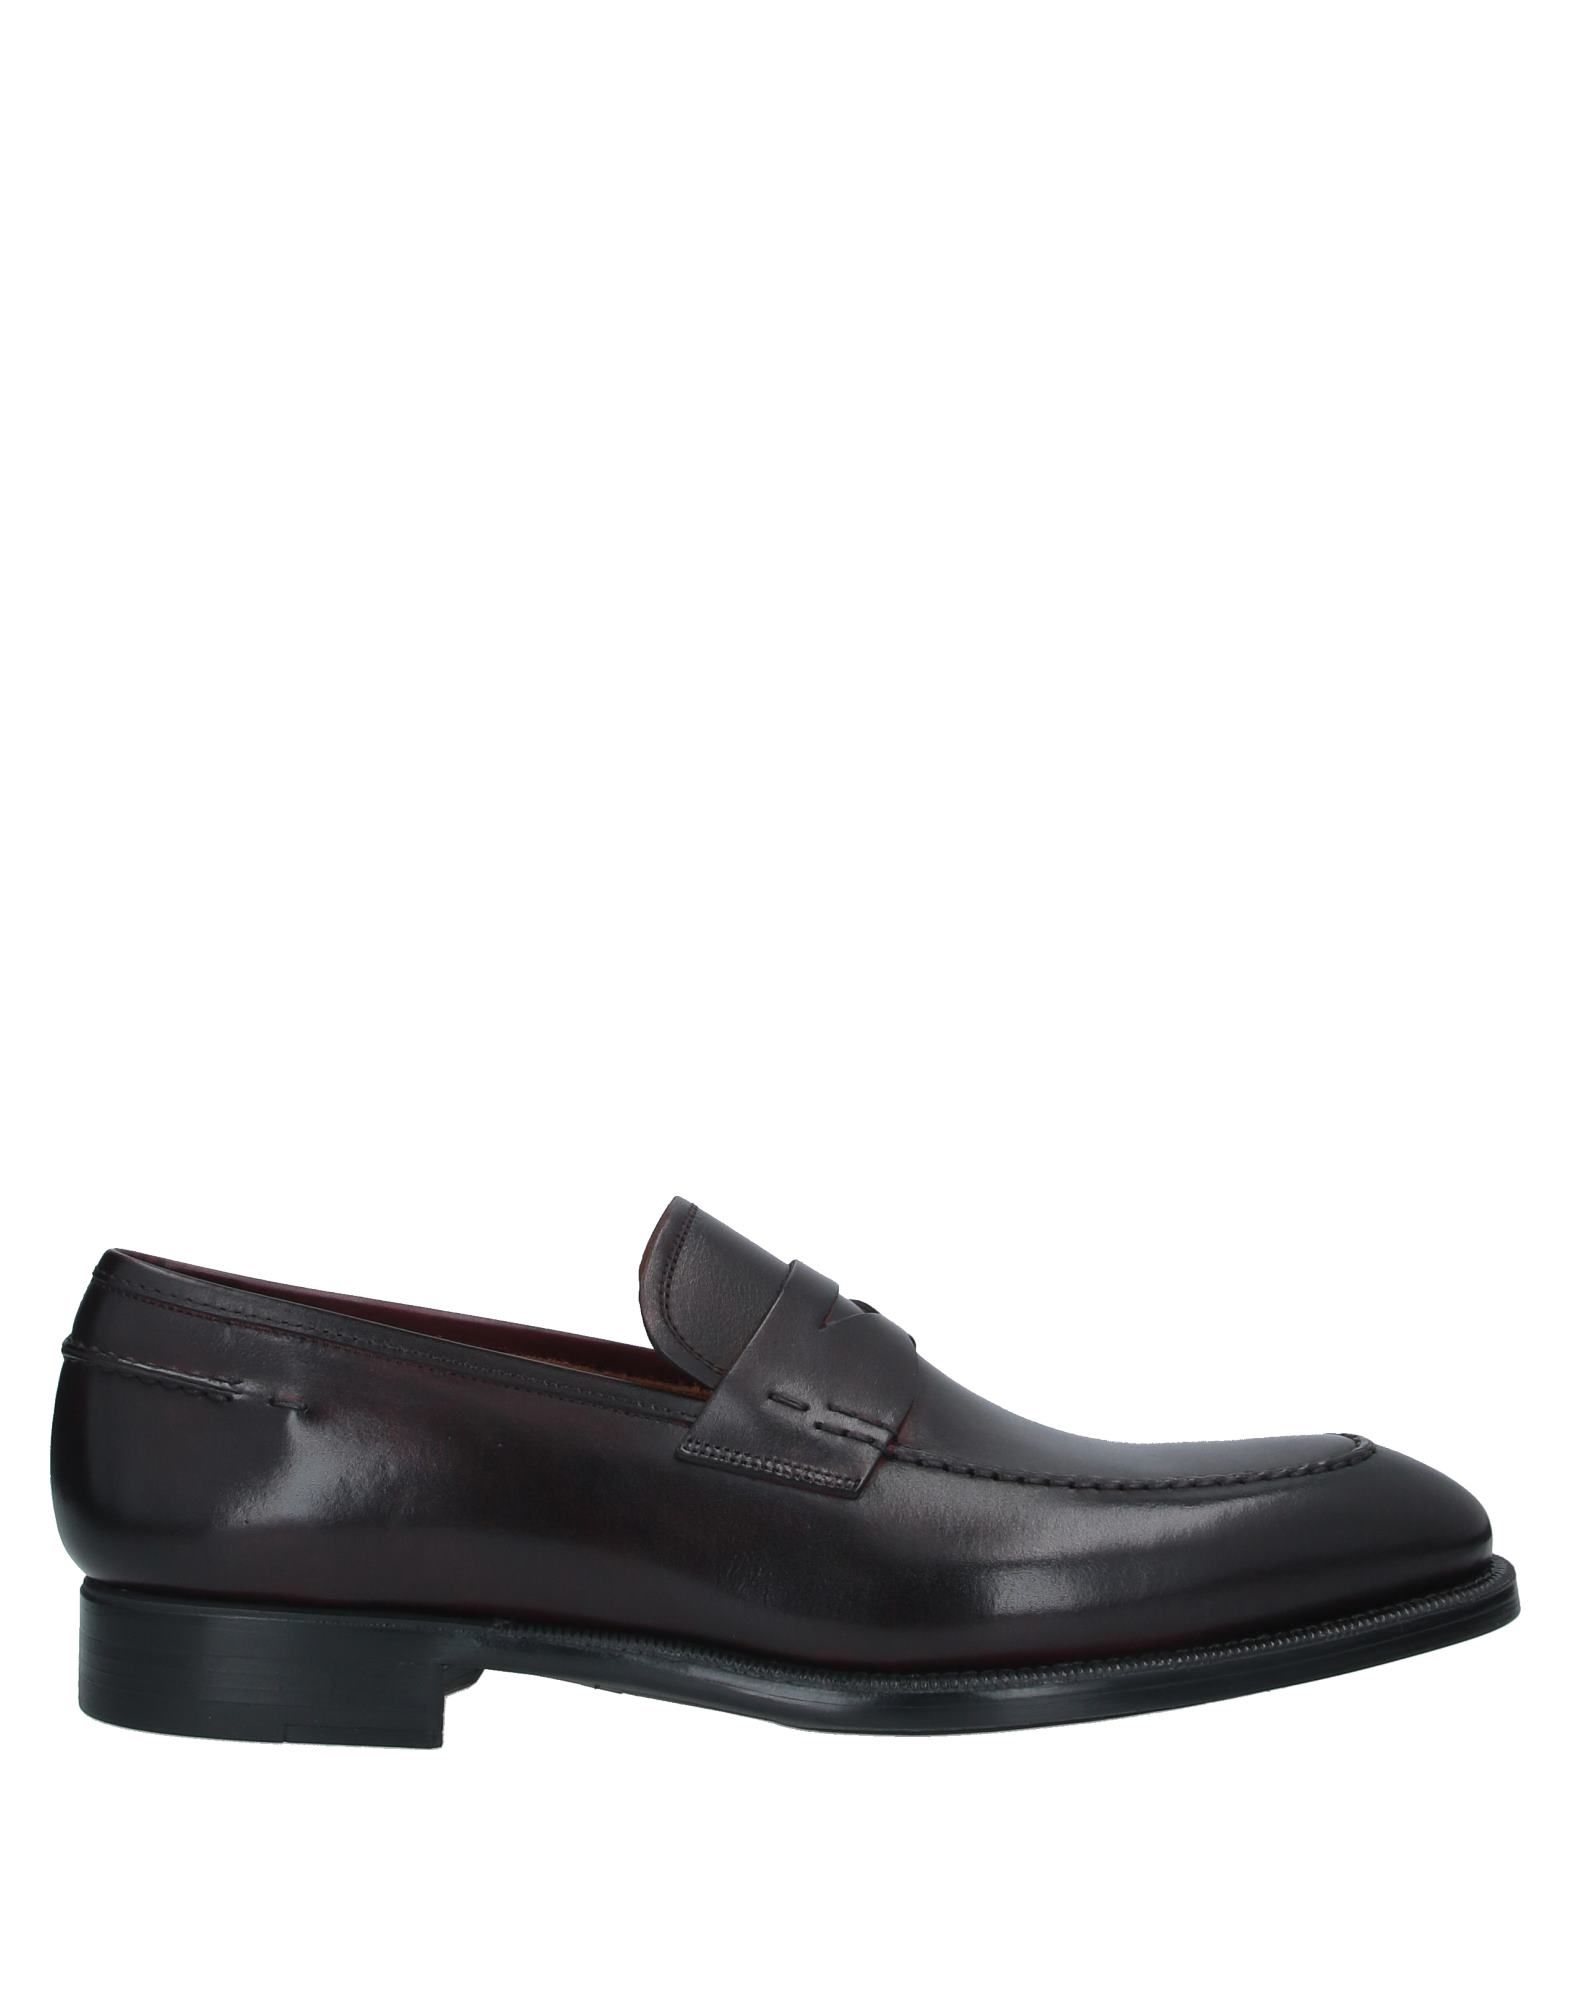 MAGNANNI Loafers. leather, no appliqués, solid color, round toeline, square heel, leather lining, rubber cleated sole, contains non-textile parts of animal origin. Soft Leather